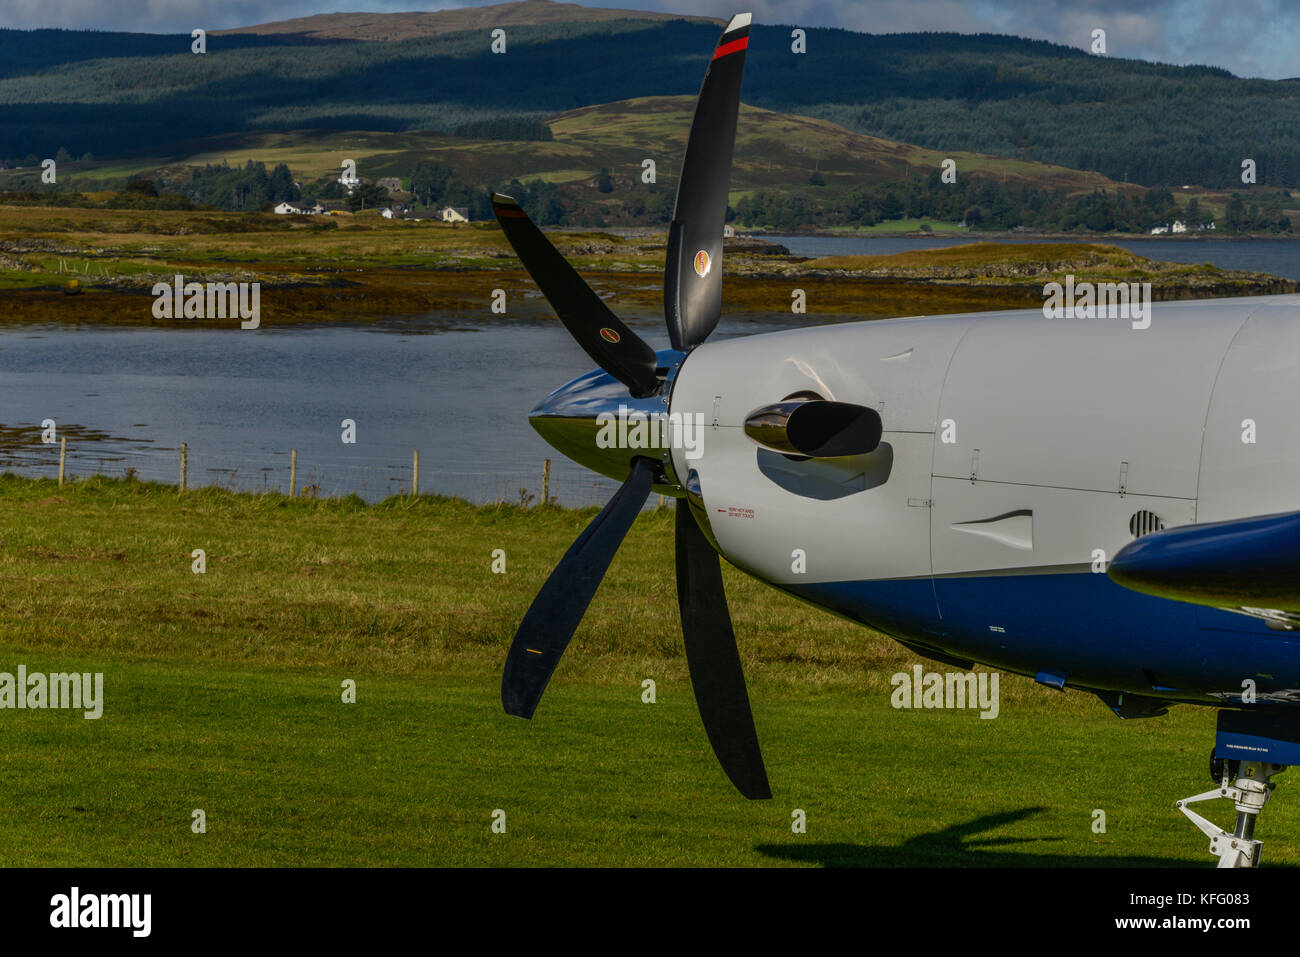 Close up static nose detail of a Pilatus PC12 aircraft, with feathered prop. - Stock Image